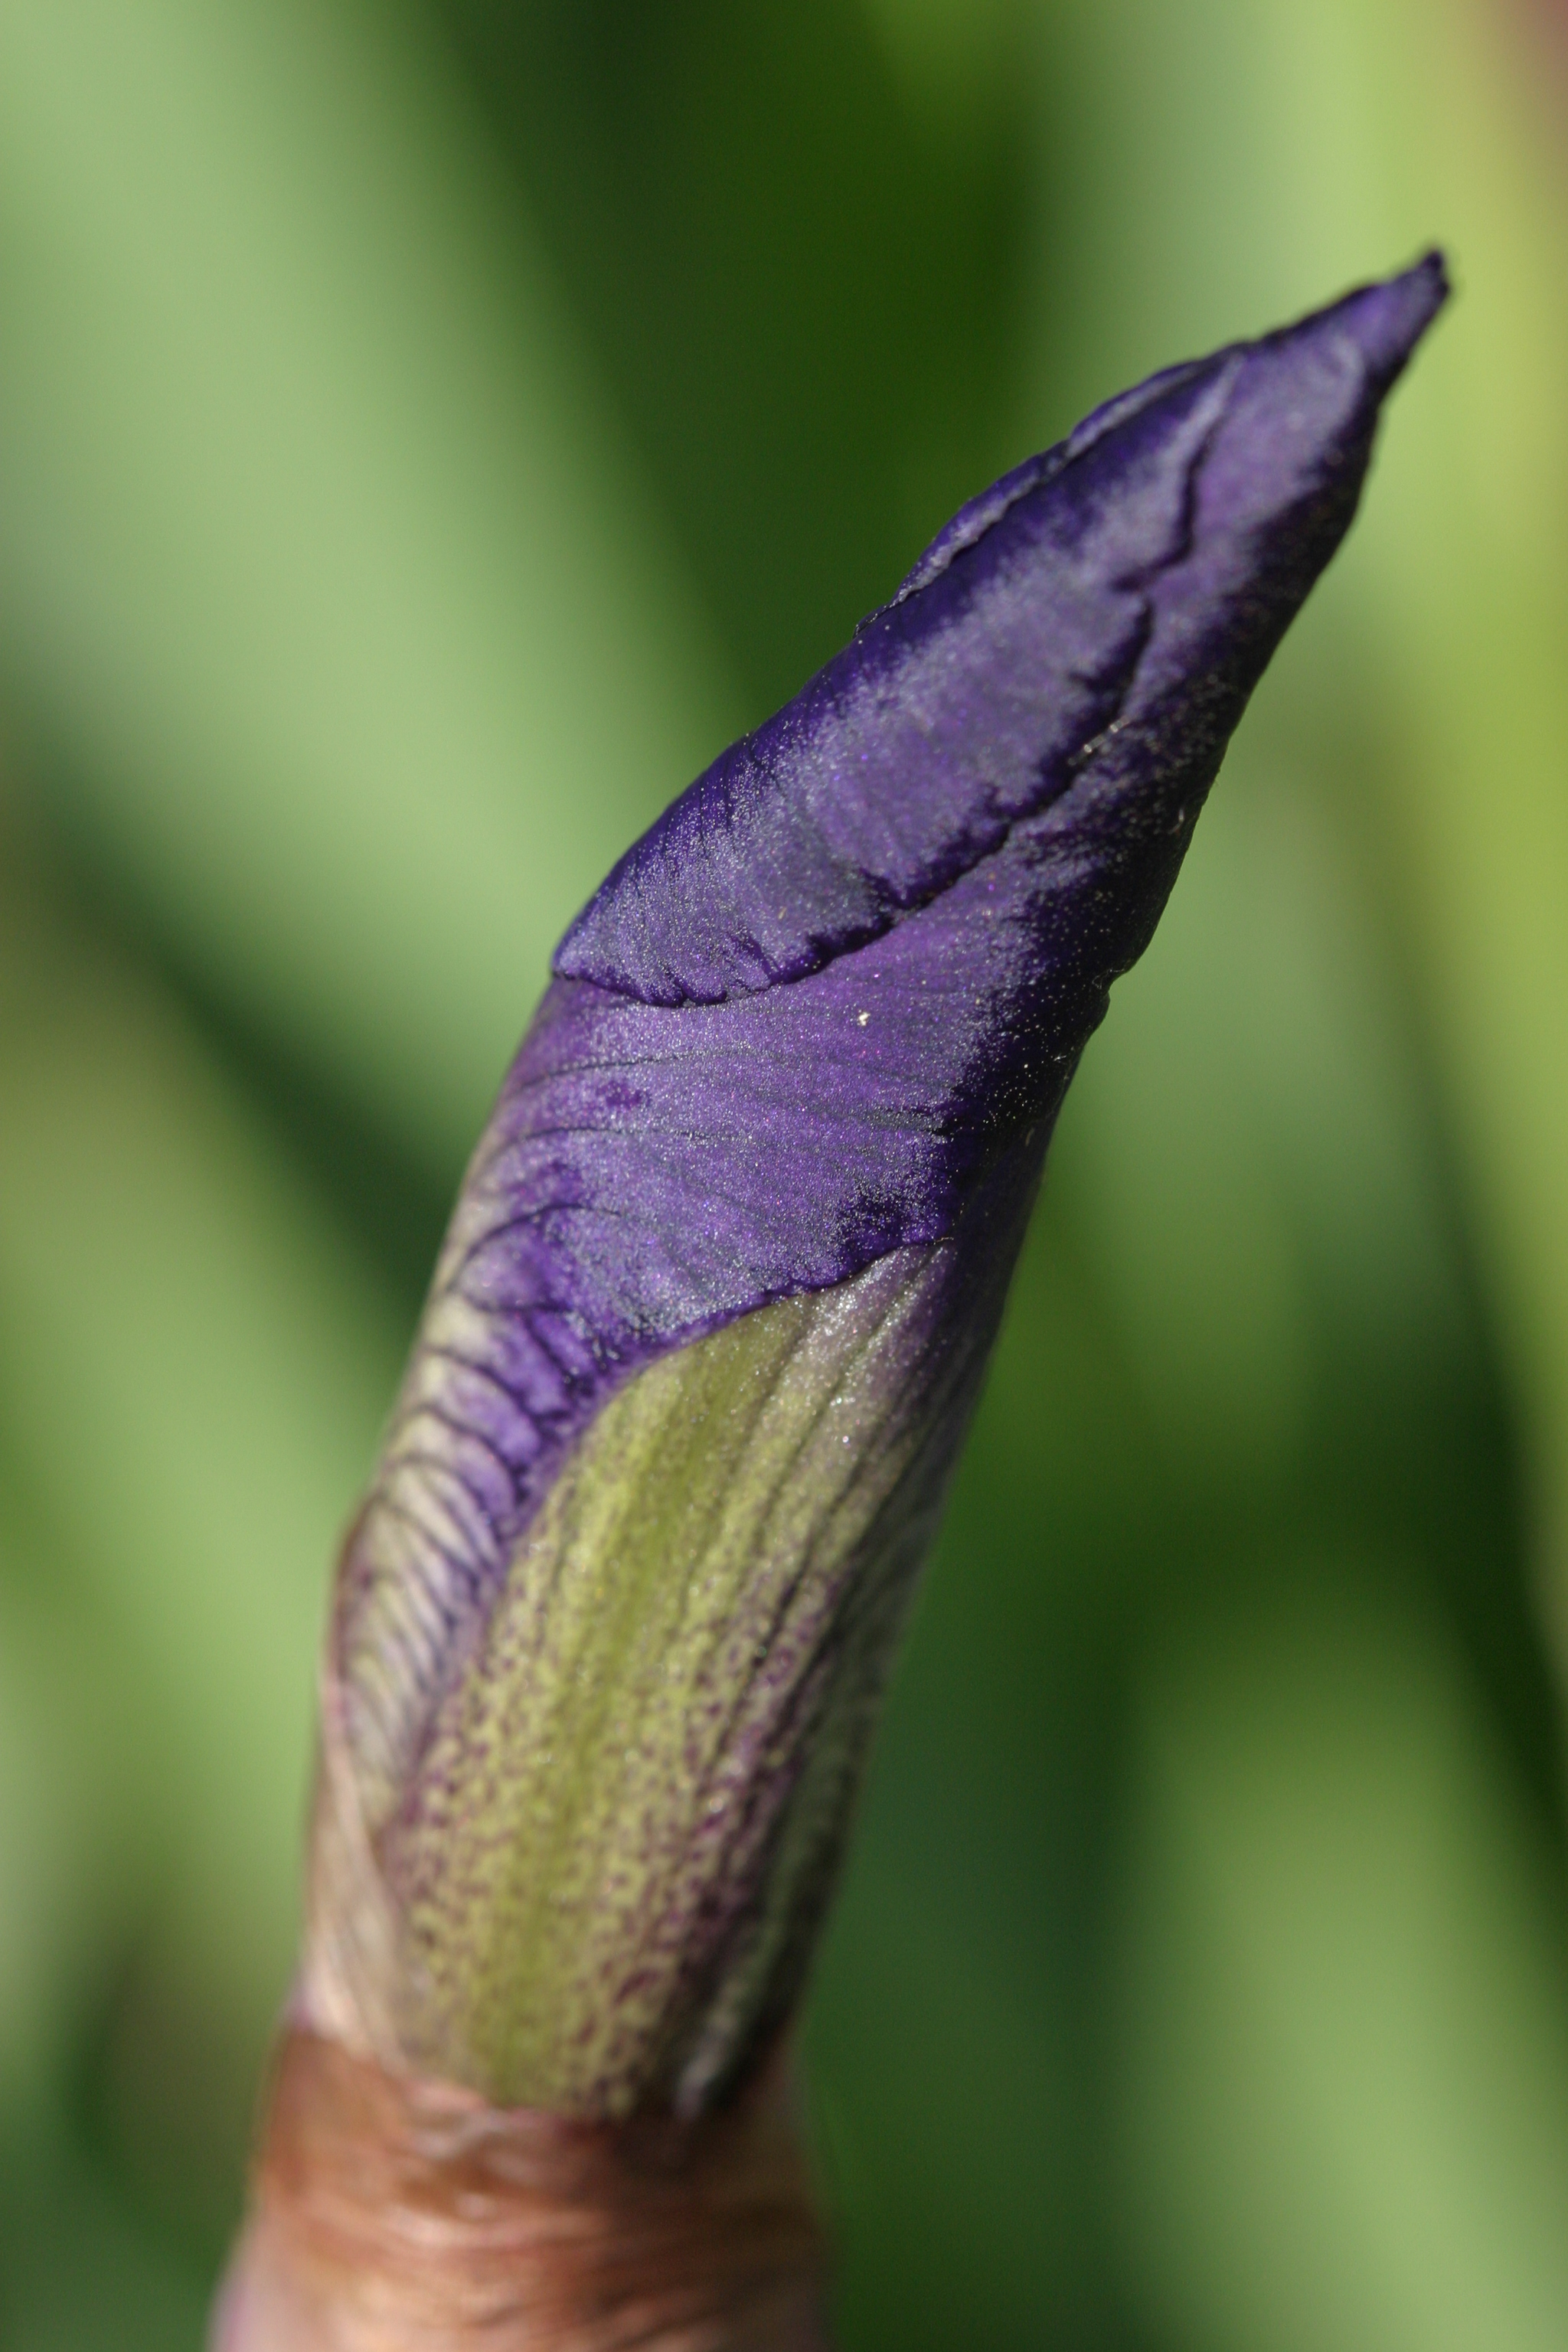 Iris About to Bloom